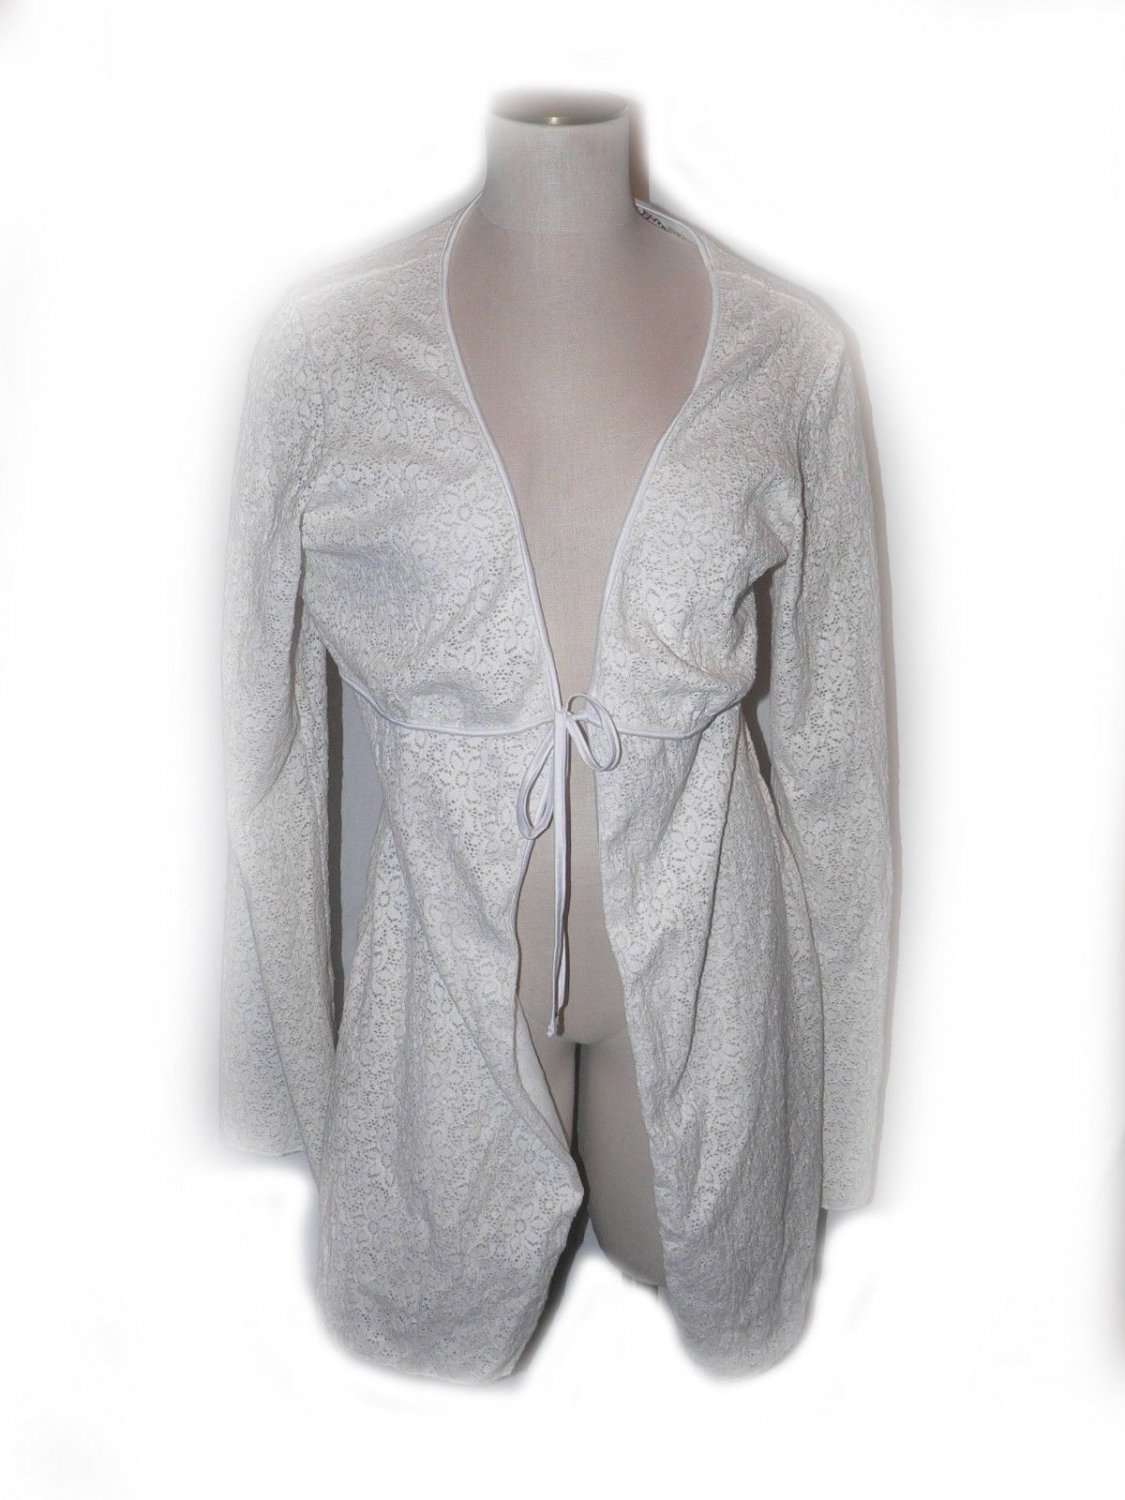 New COSABELLA L white stretch lace robe swimsuit cover up heavyweight white ties